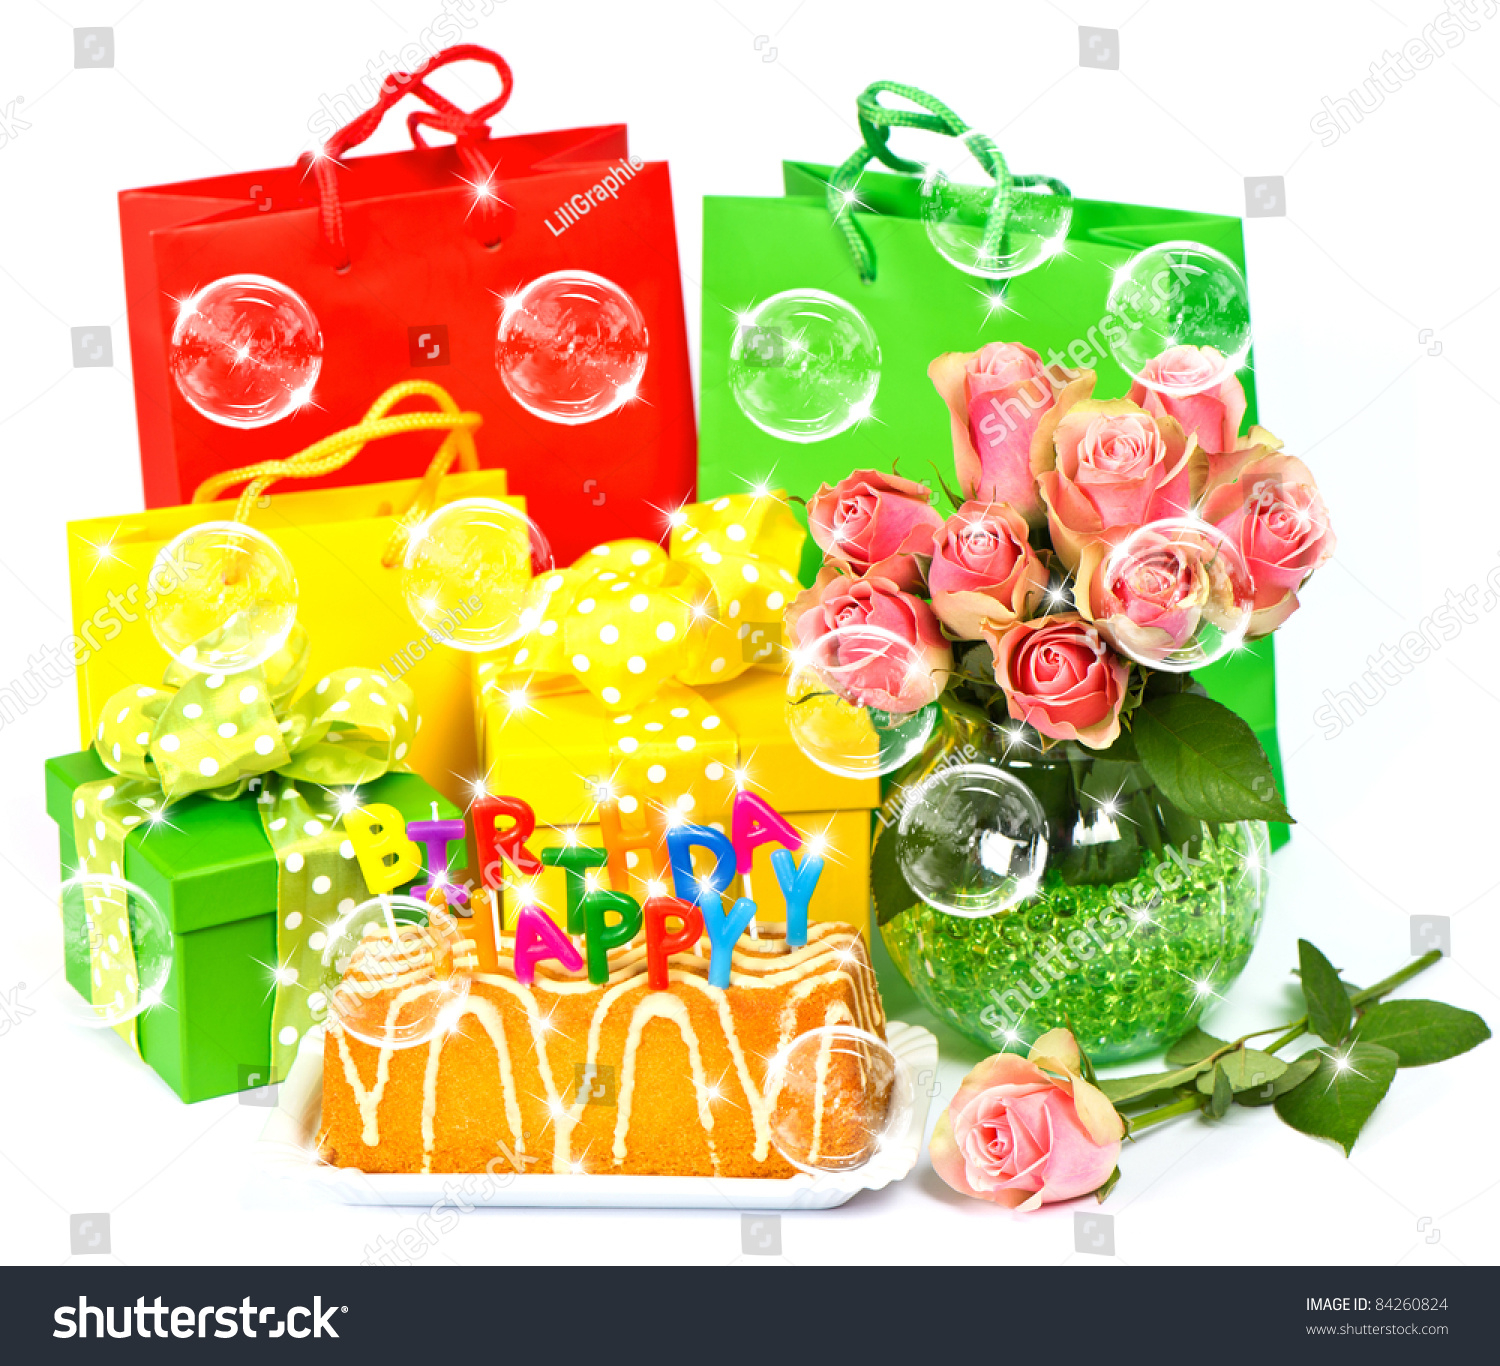 Happy Birthday Cake And Flowers Images Happy Birthday Cake Candles Flowers Gifts Stock Photo Edit Now